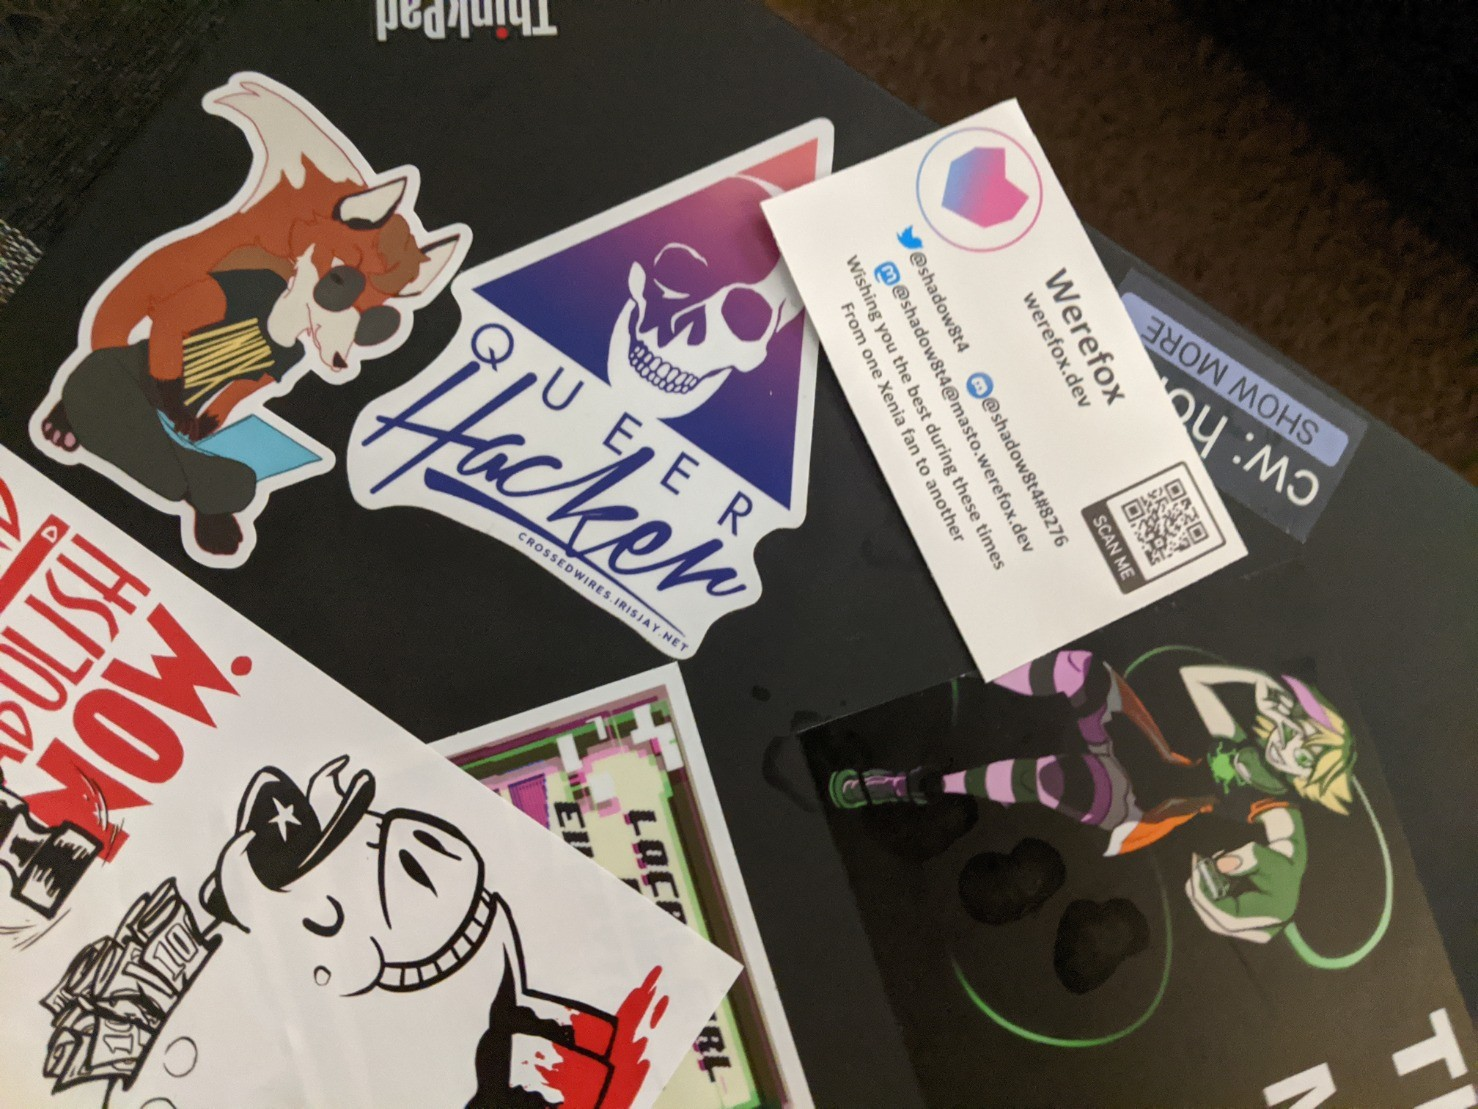 My thinkpad, decorated with stickers, including one of noted linux fox Xenia hunched over a laptop. Next to a Queer Hacker AOL logo sticker and a defund and abolish the police sticker.